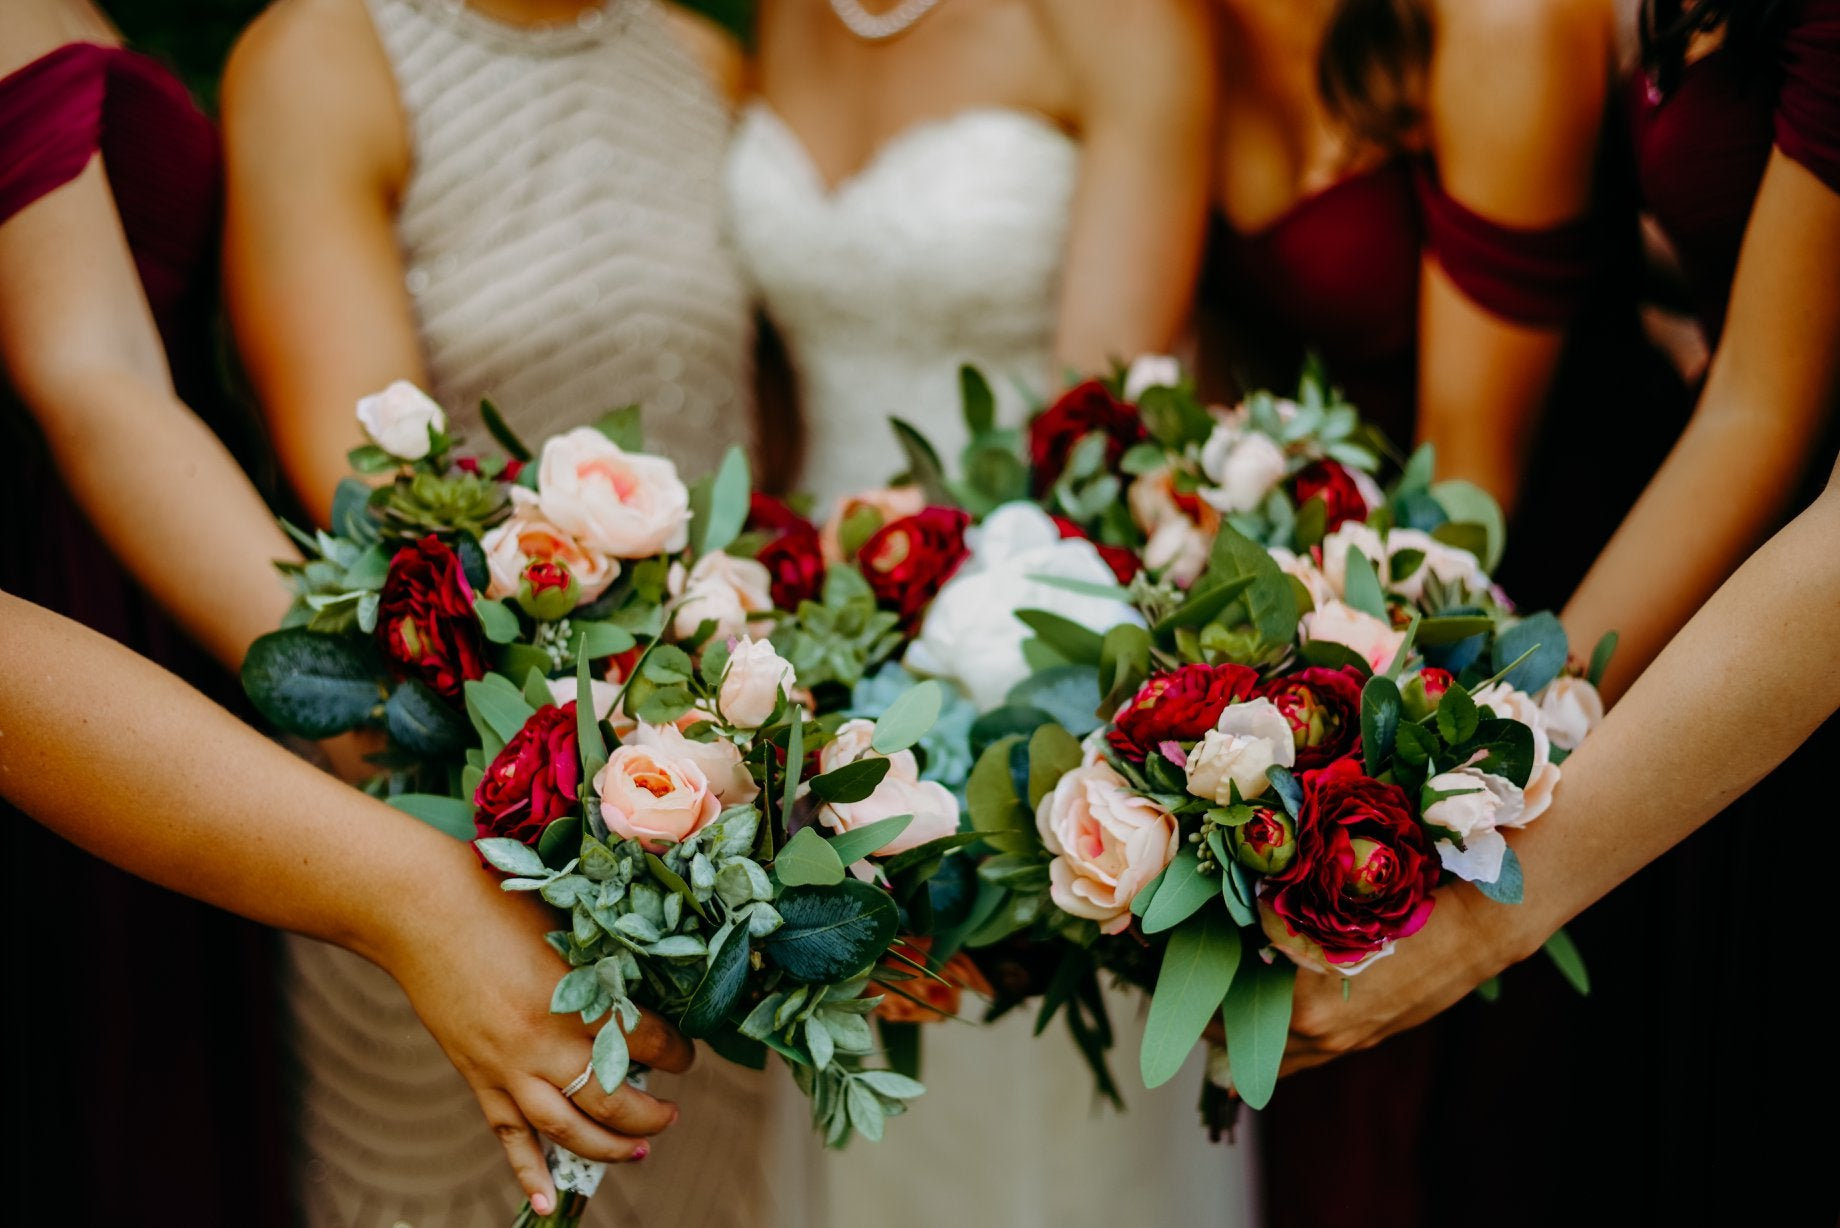 7 Tips for Selecting Your Wedding Flowers